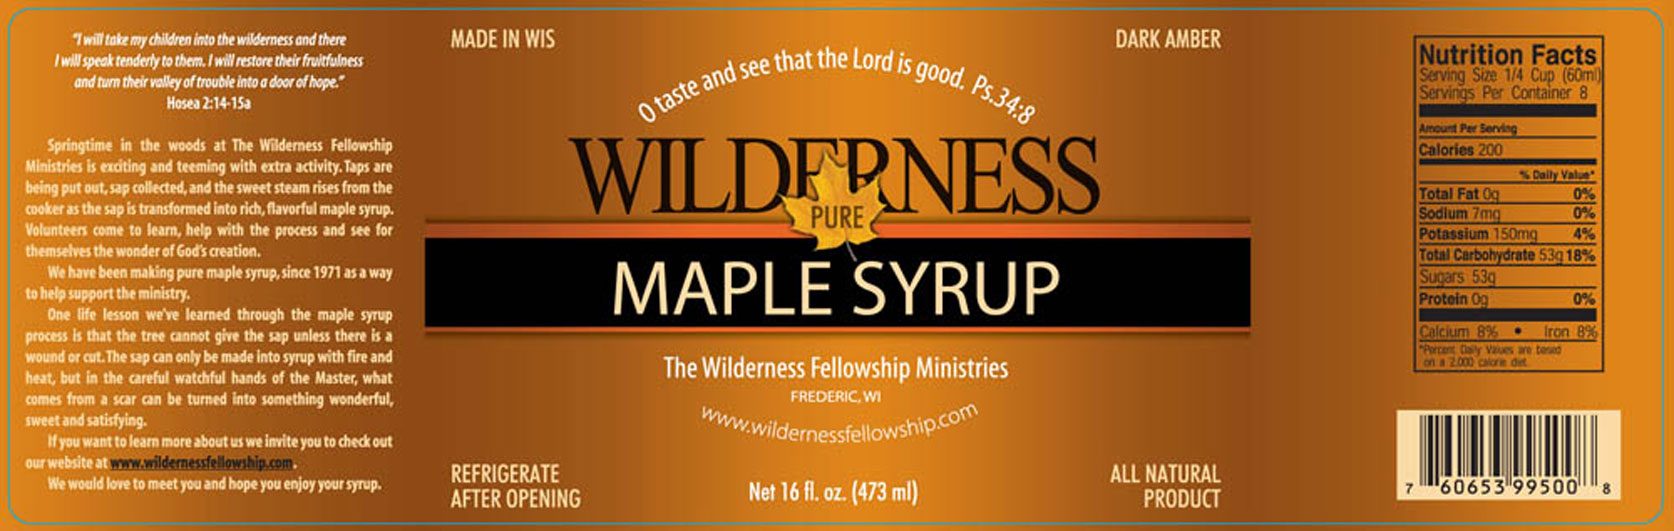 Wilderness Maple Syrup Label Banner